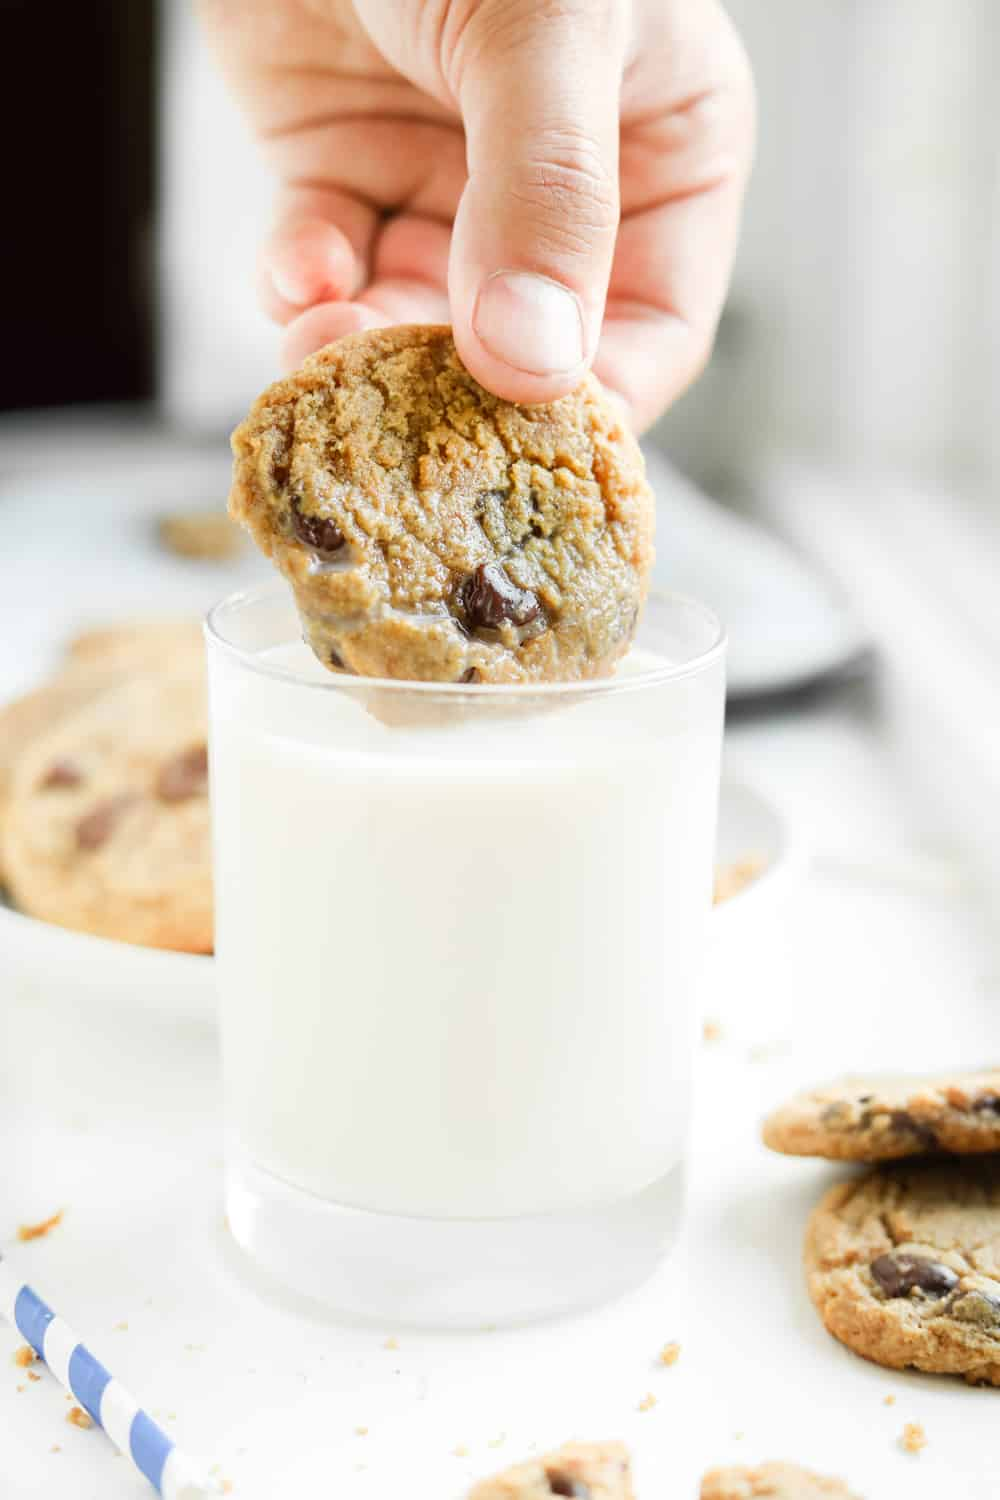 A glass of milk with a chocolate chip cookie about to be dipped in it.